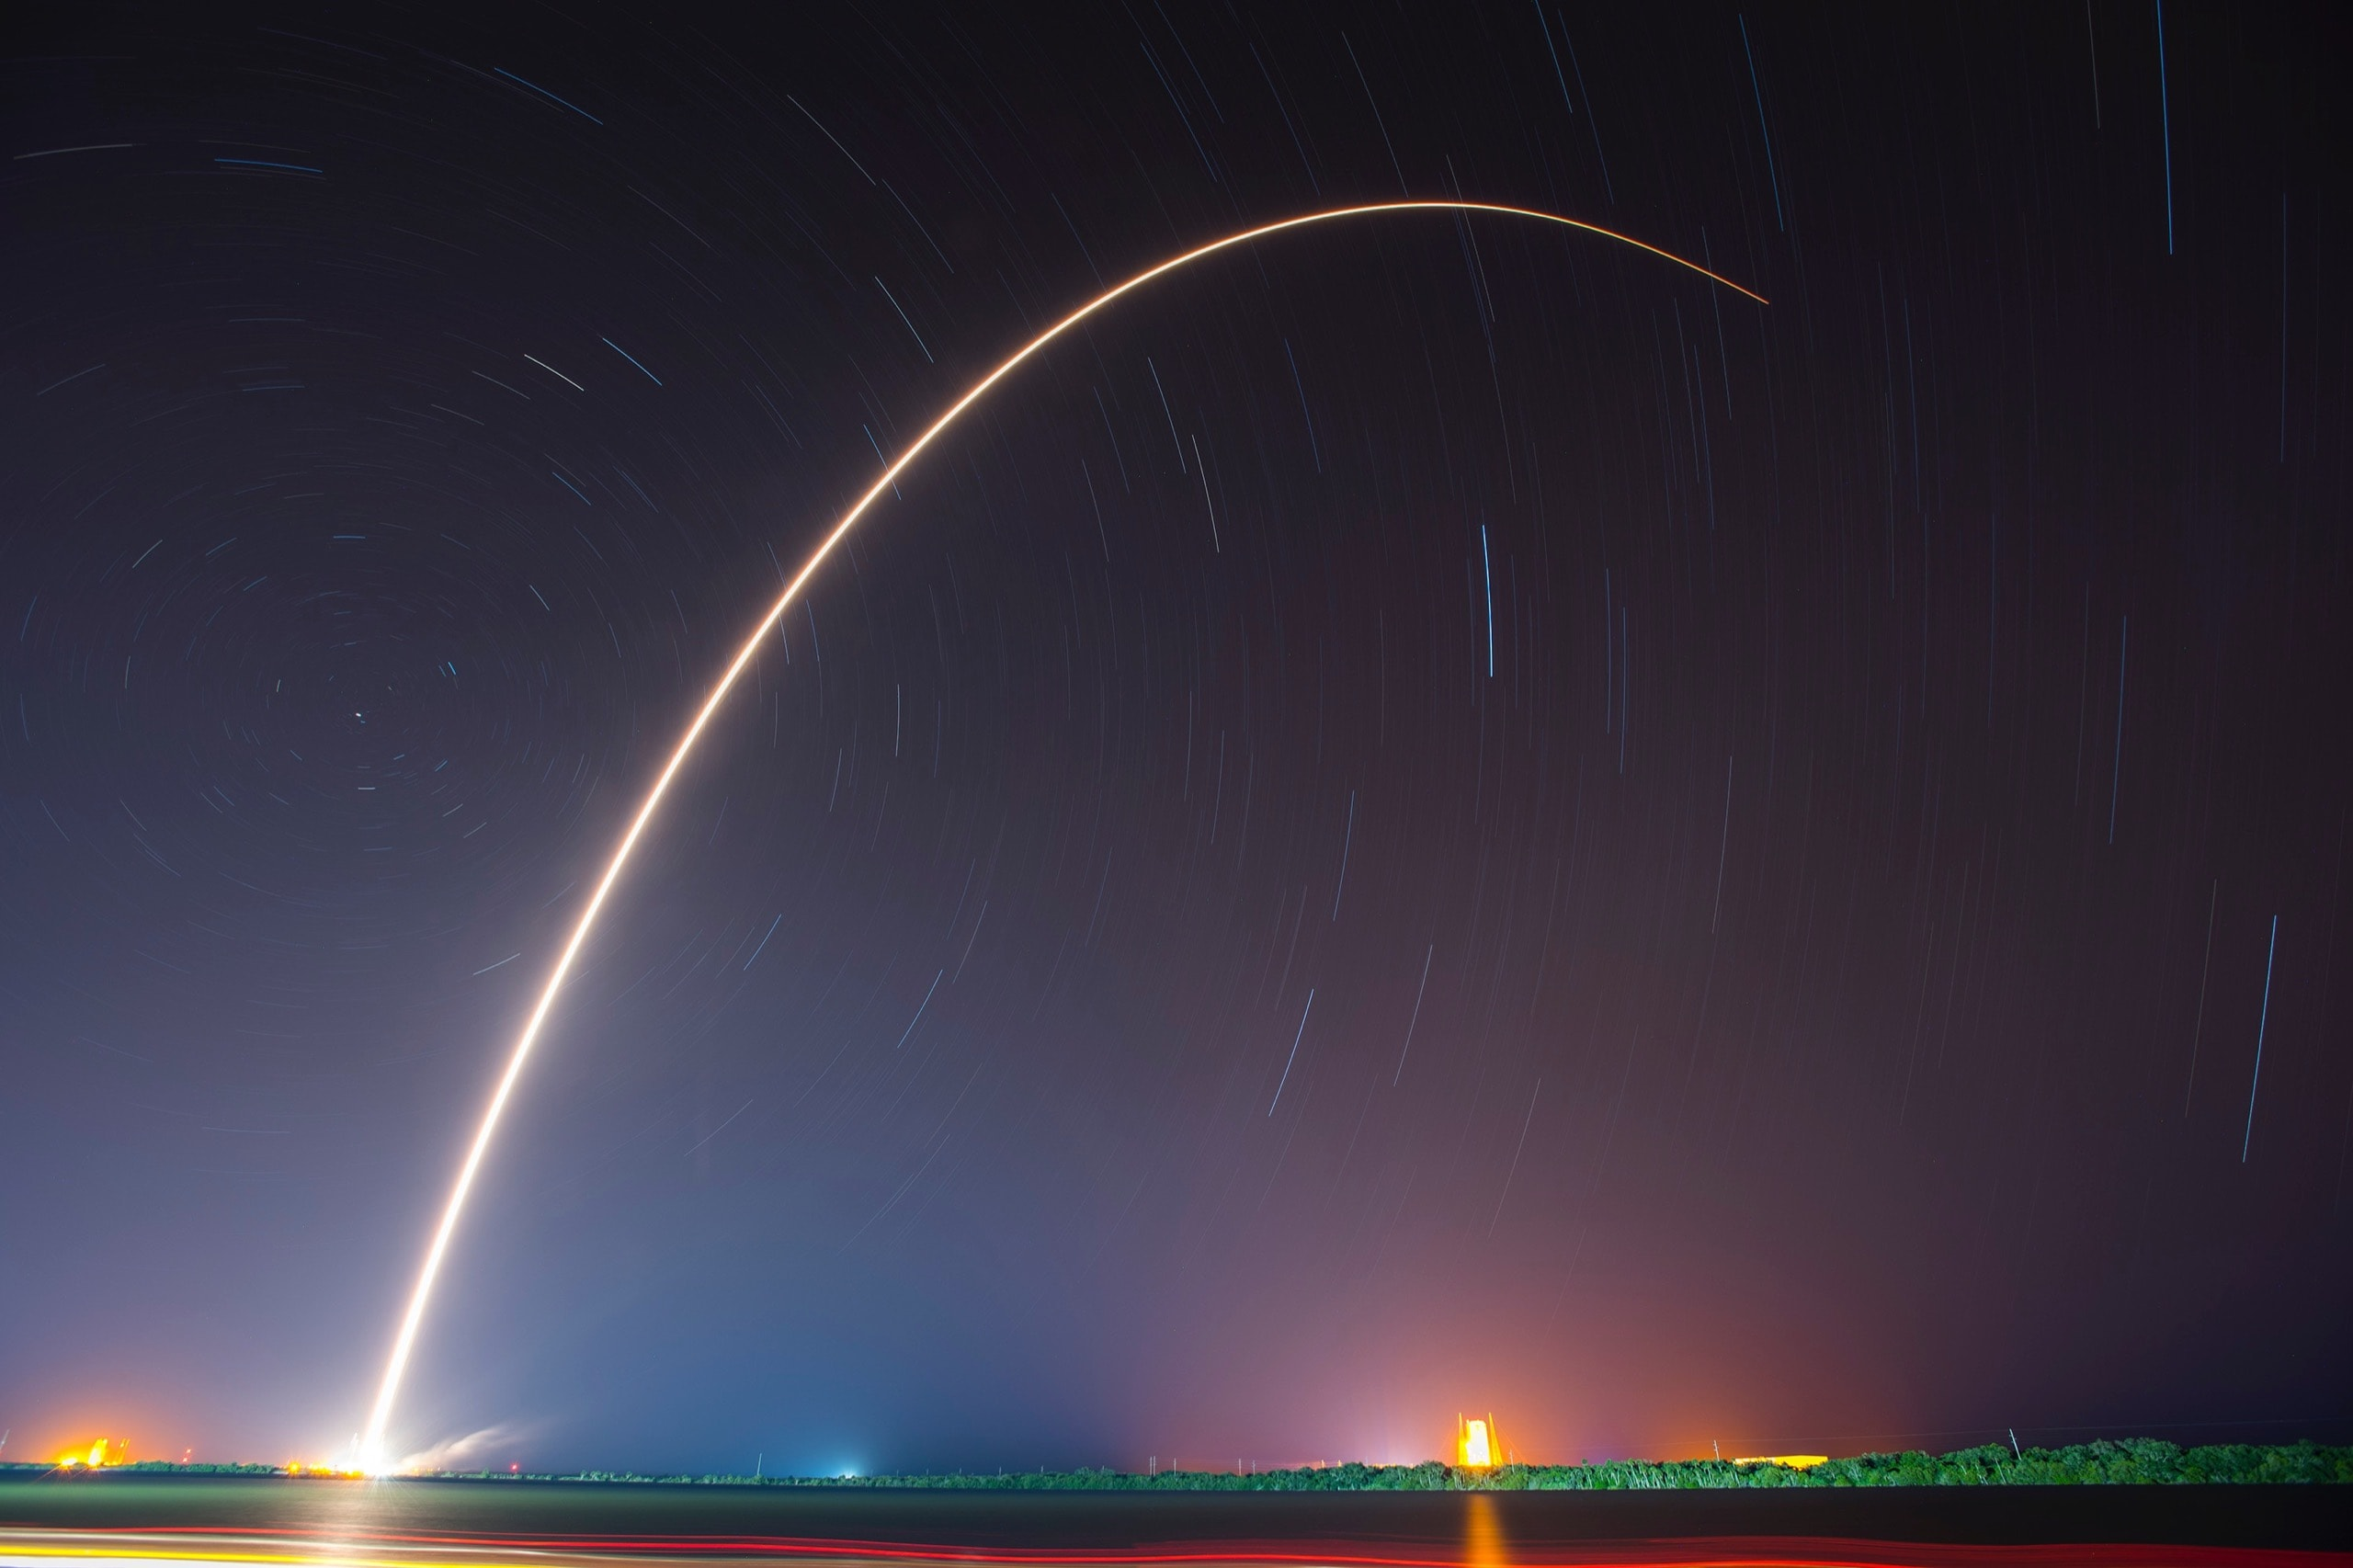 spacex-101796-unsplash